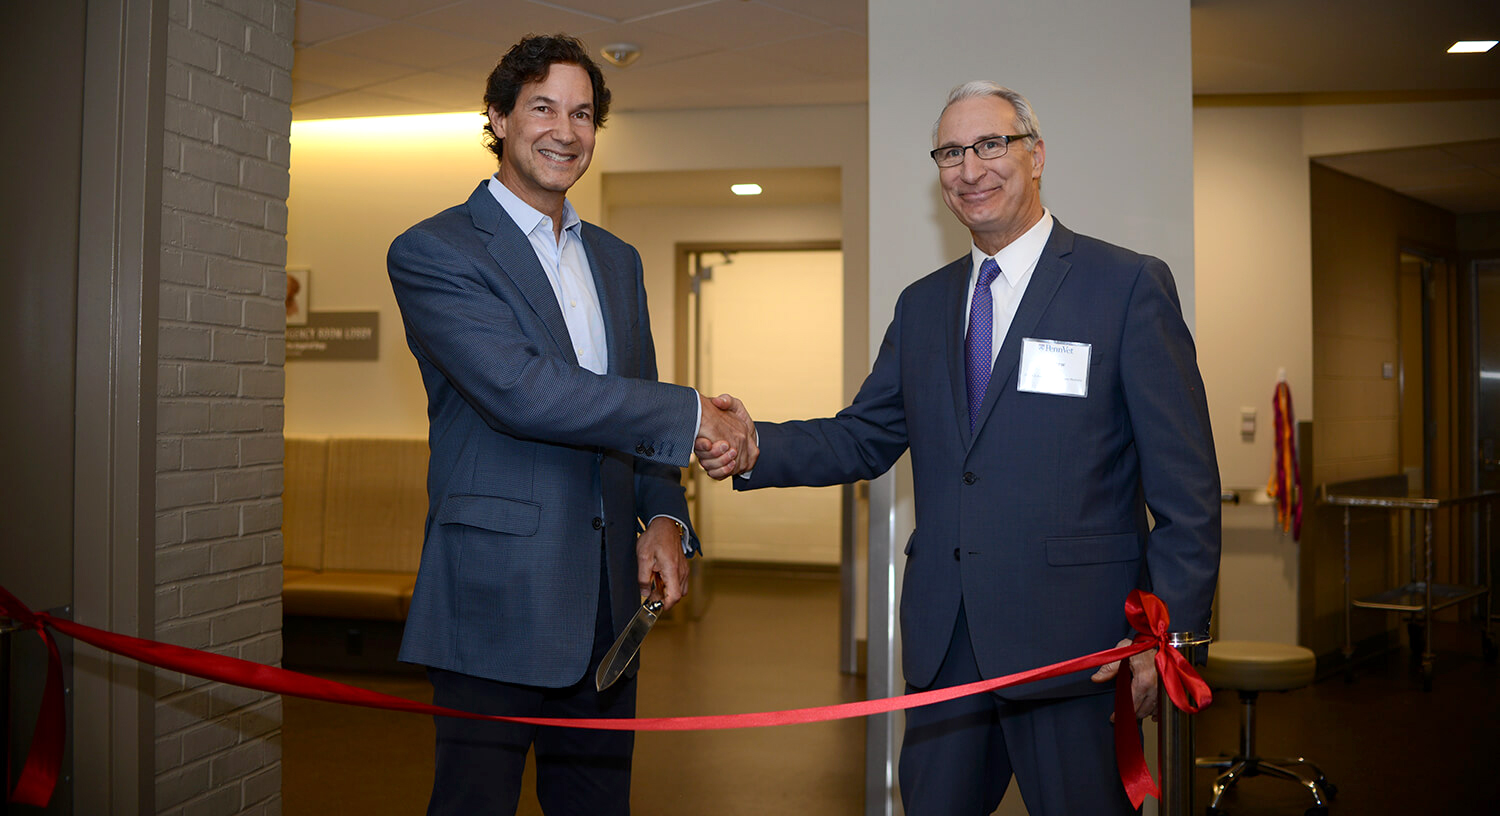 Richard Lichter and Dean Andrew Hoffman shake hands before cutting the ribbon at the dedication of the Richard Lichter Emergency Room.